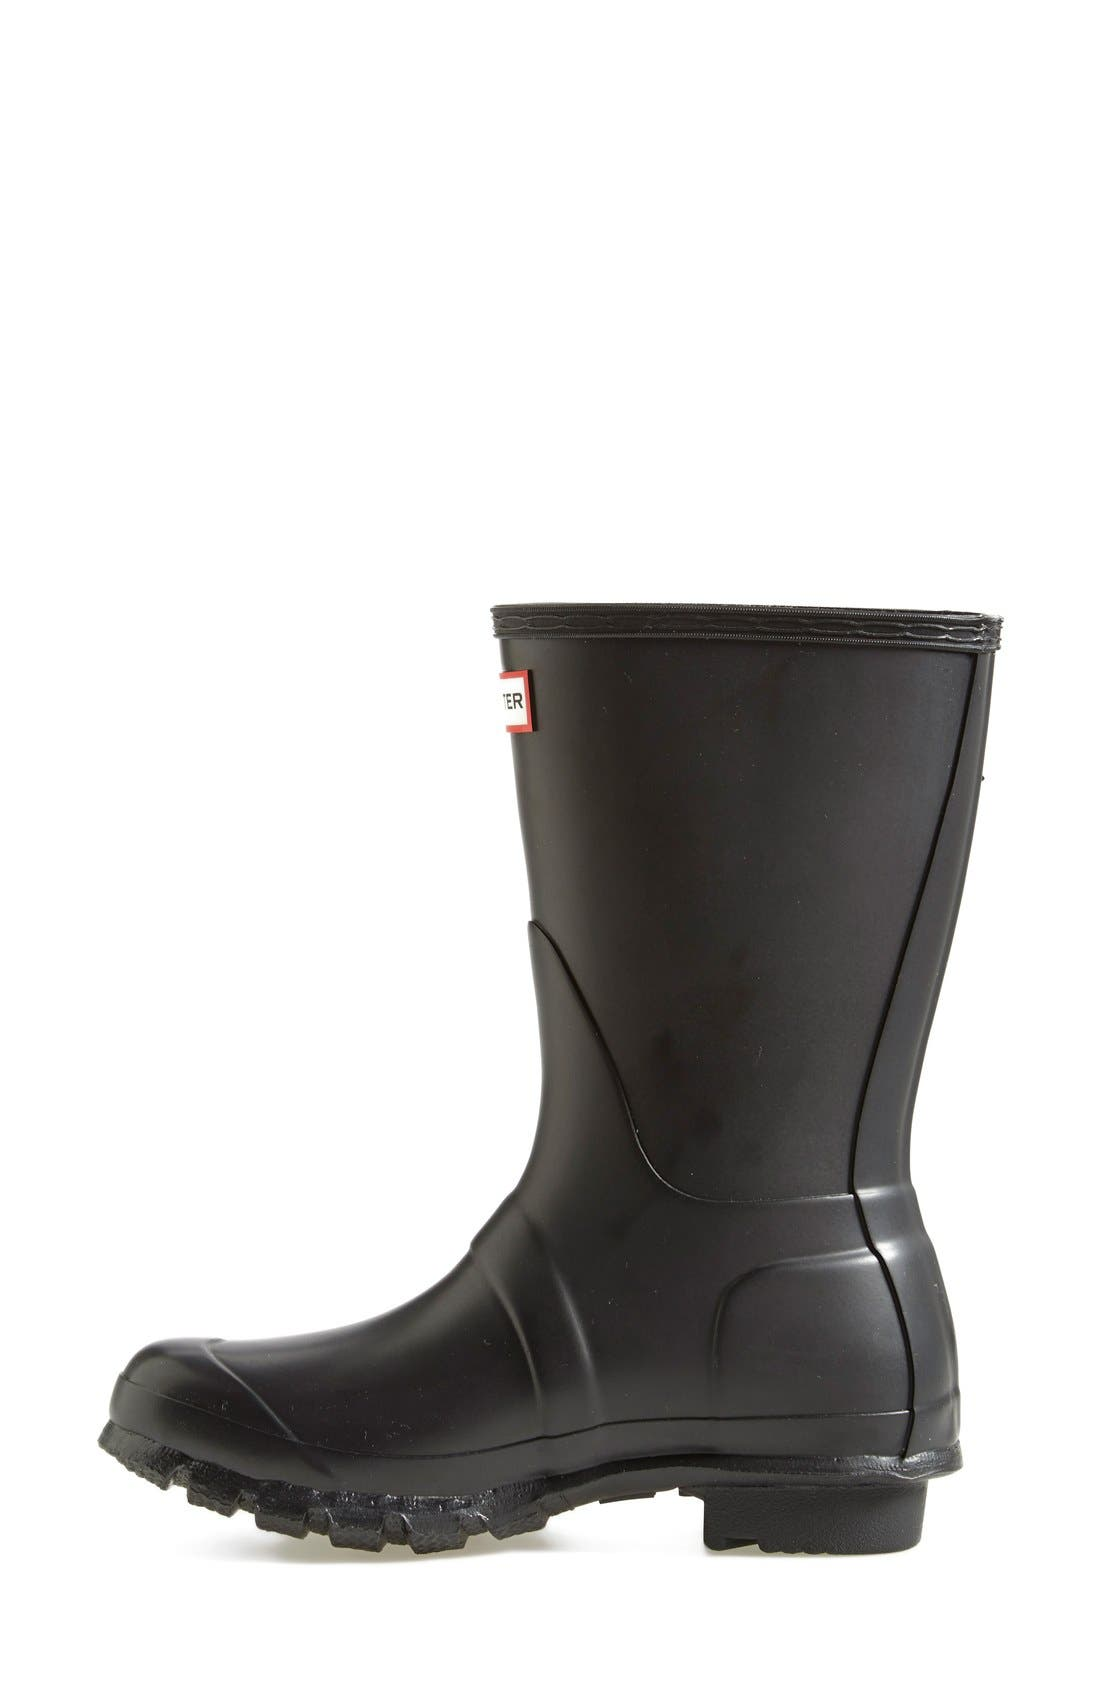 Alternate Image 2  - Hunter 'Original Short' Rain Boot (Women)